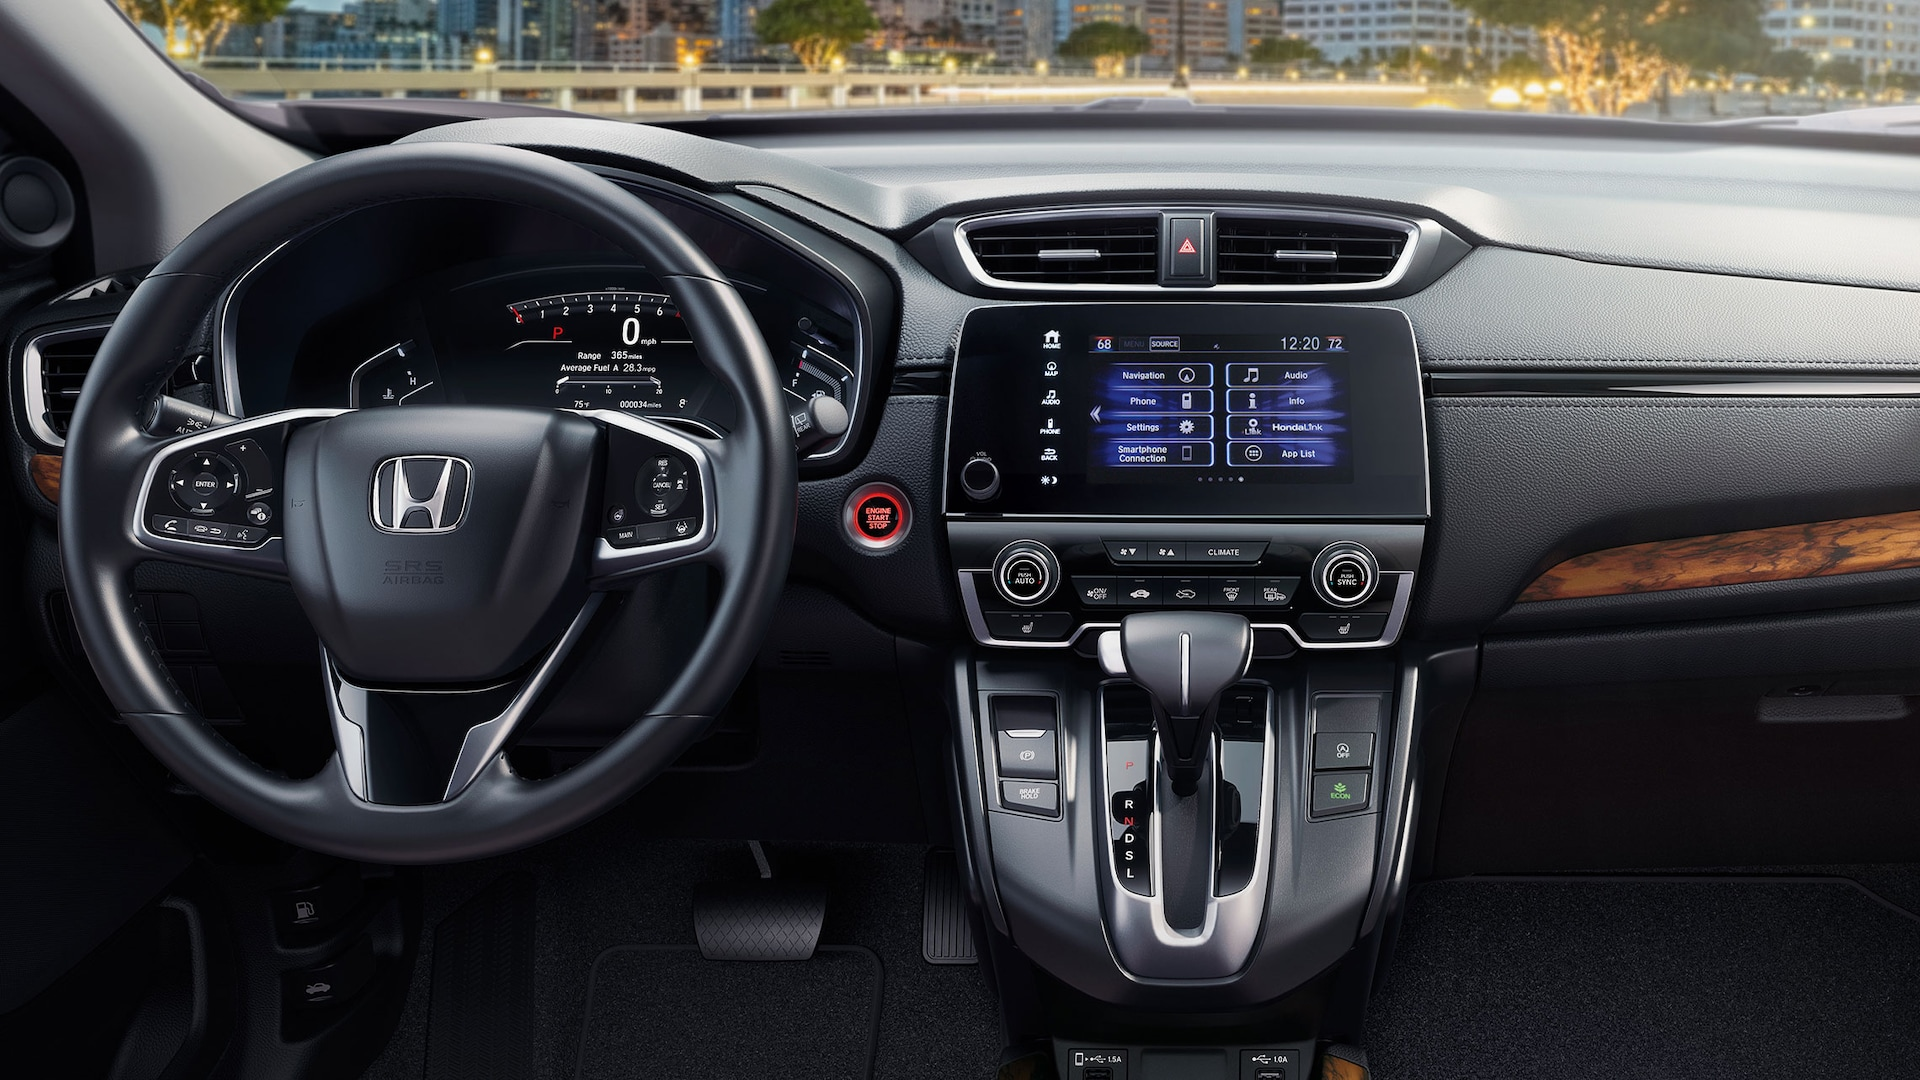 Interior view of instrument panel in the 2021 Honda CR-V with Black Leather.